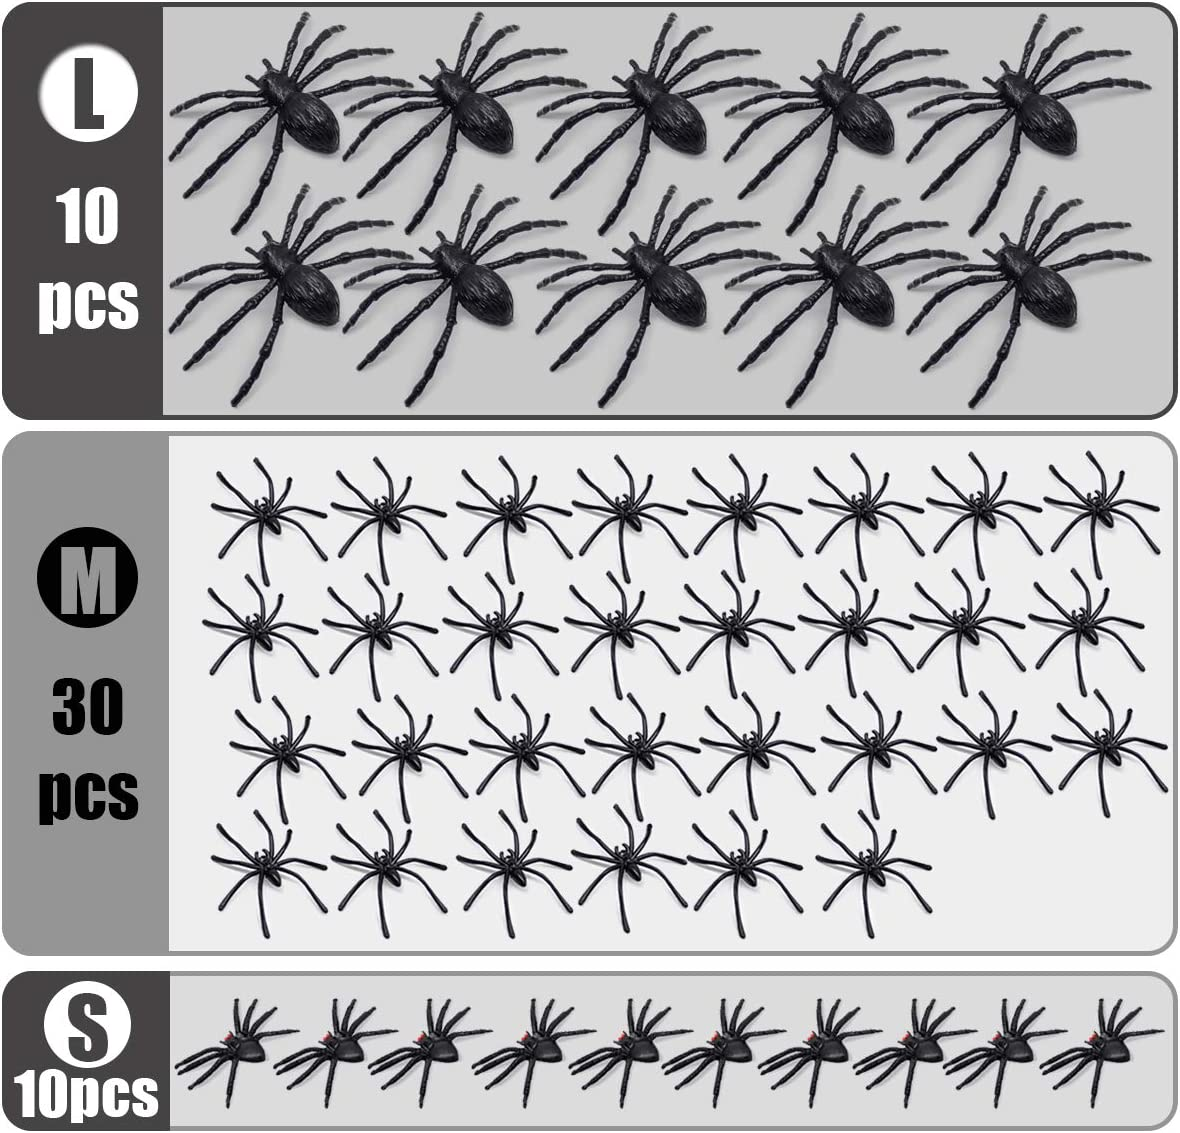 Realistic Plastic Spider Toys Halloween Decorations Fake Spider Toys for Kids 50pcs